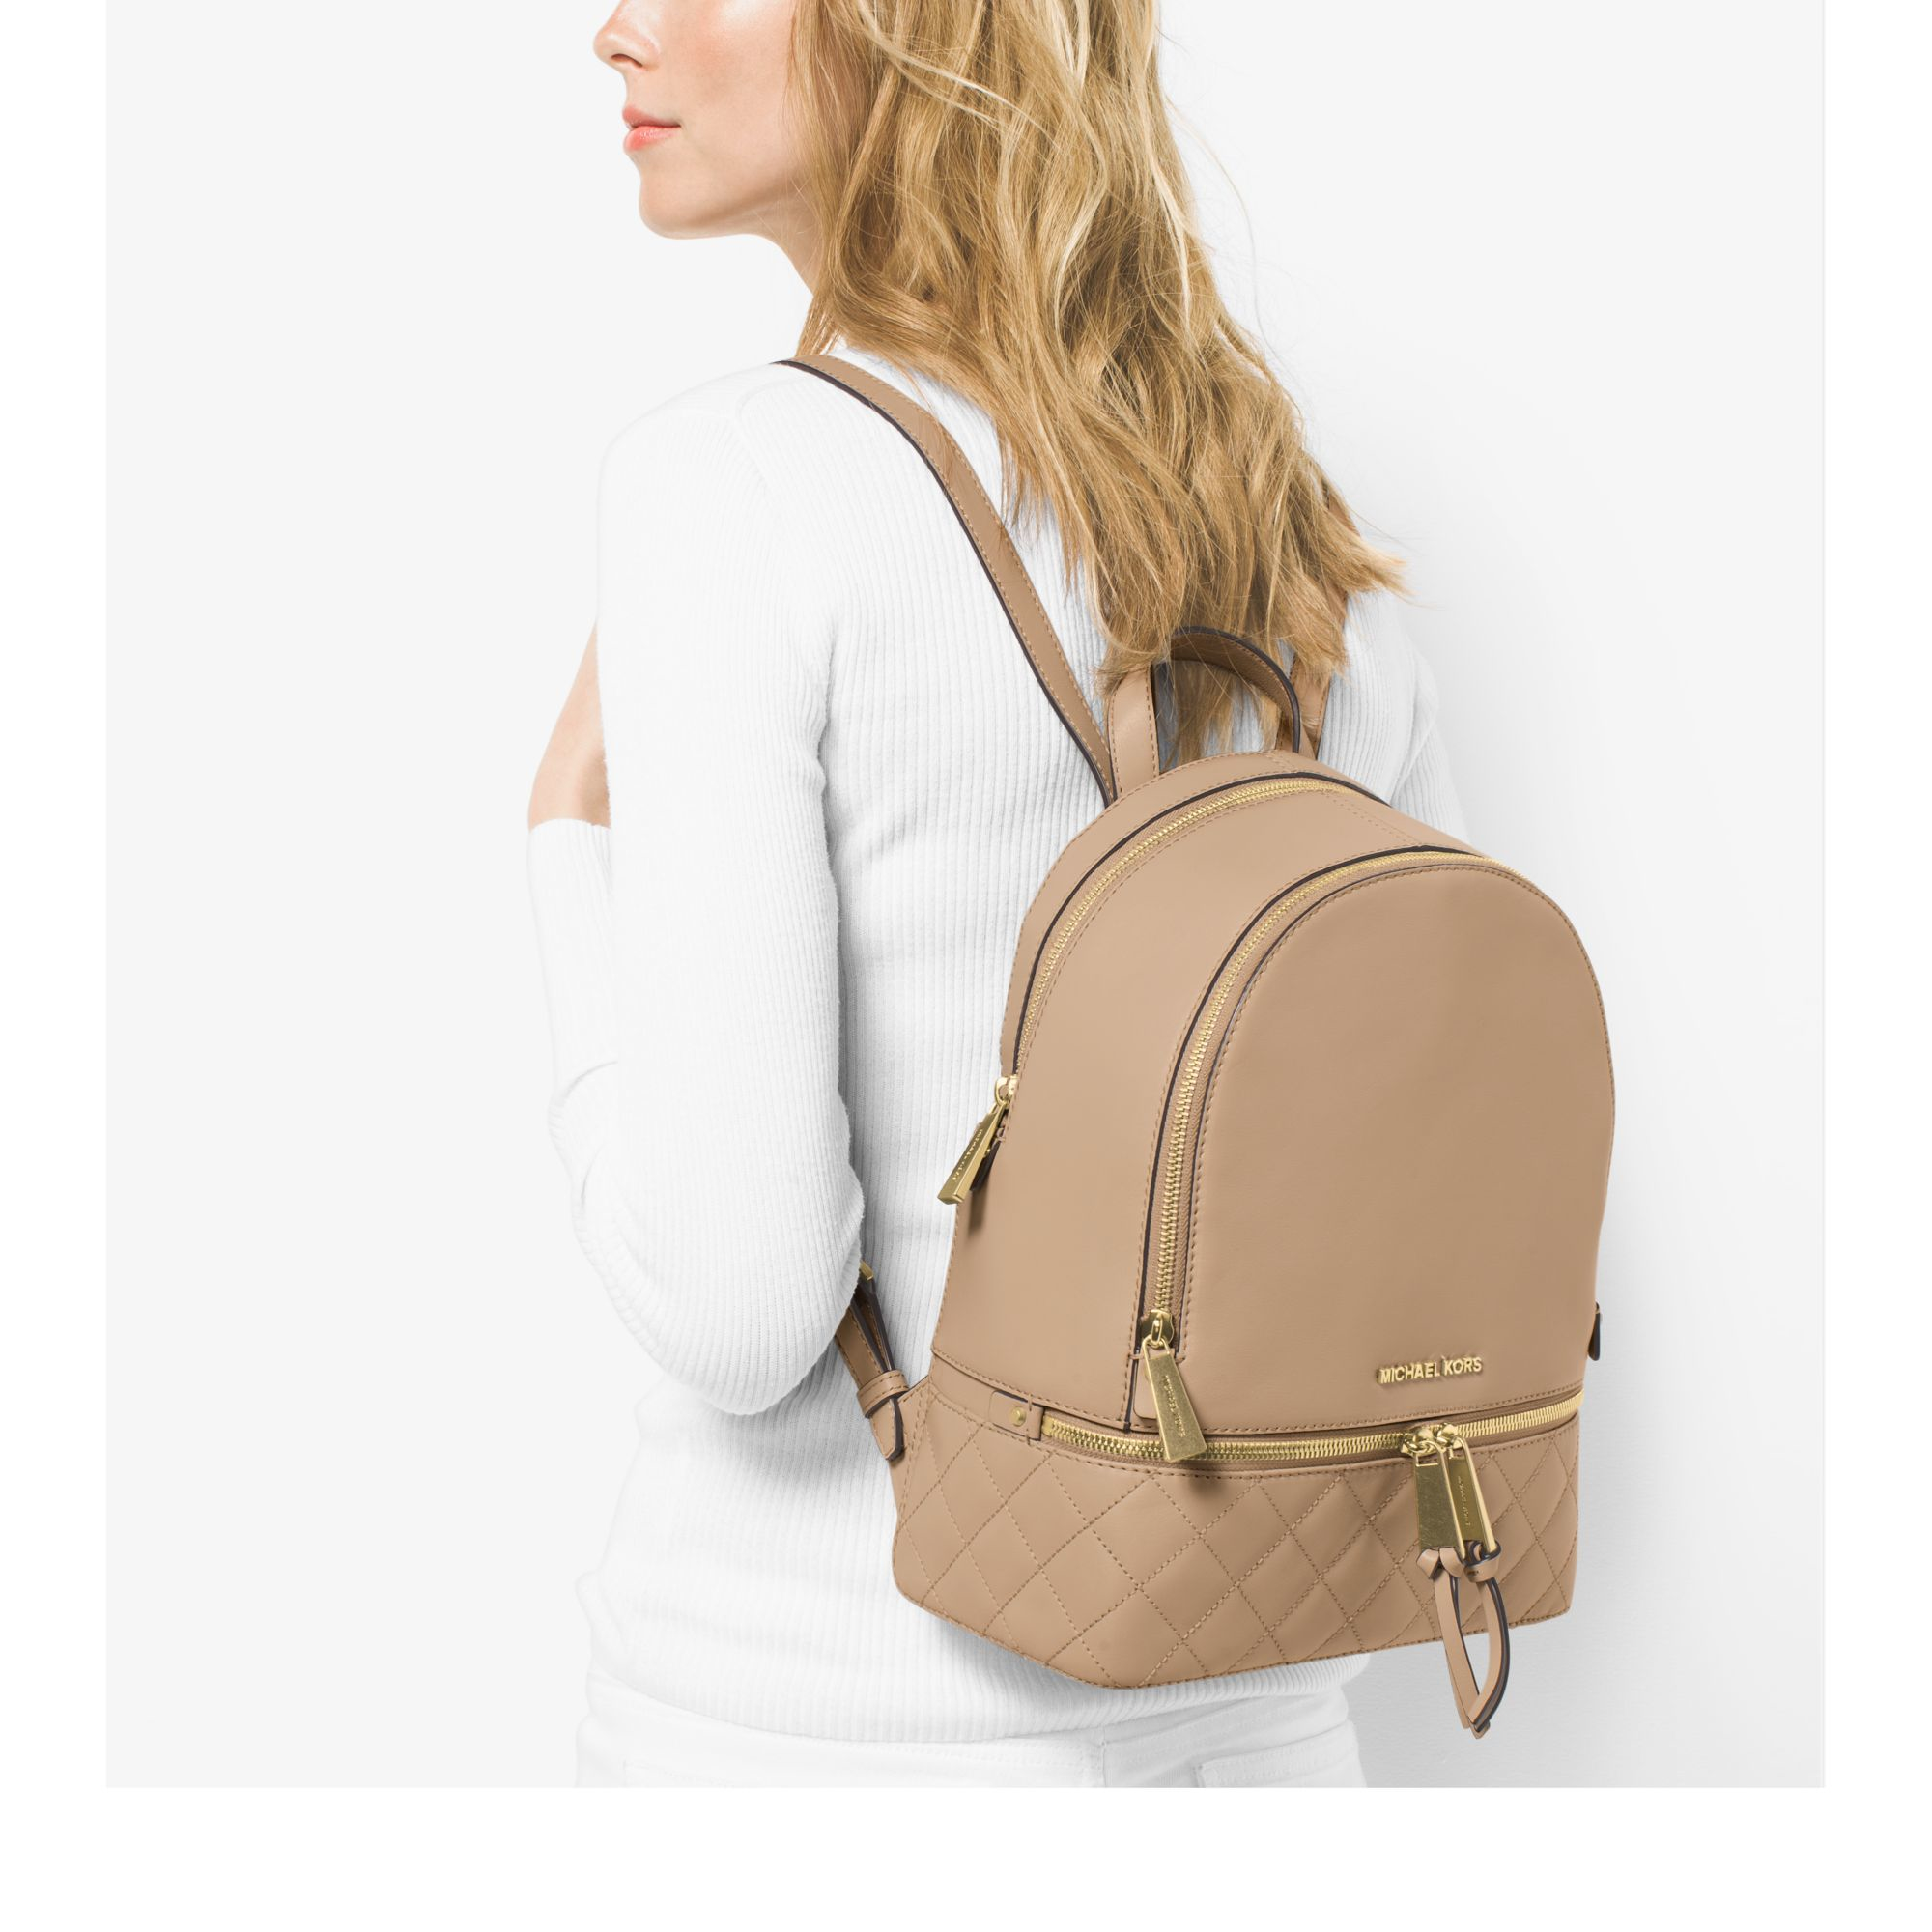 Michael Kors Rhea Mini Backpack Brown - Ken Chad Consulting Ltd 4705eede7a